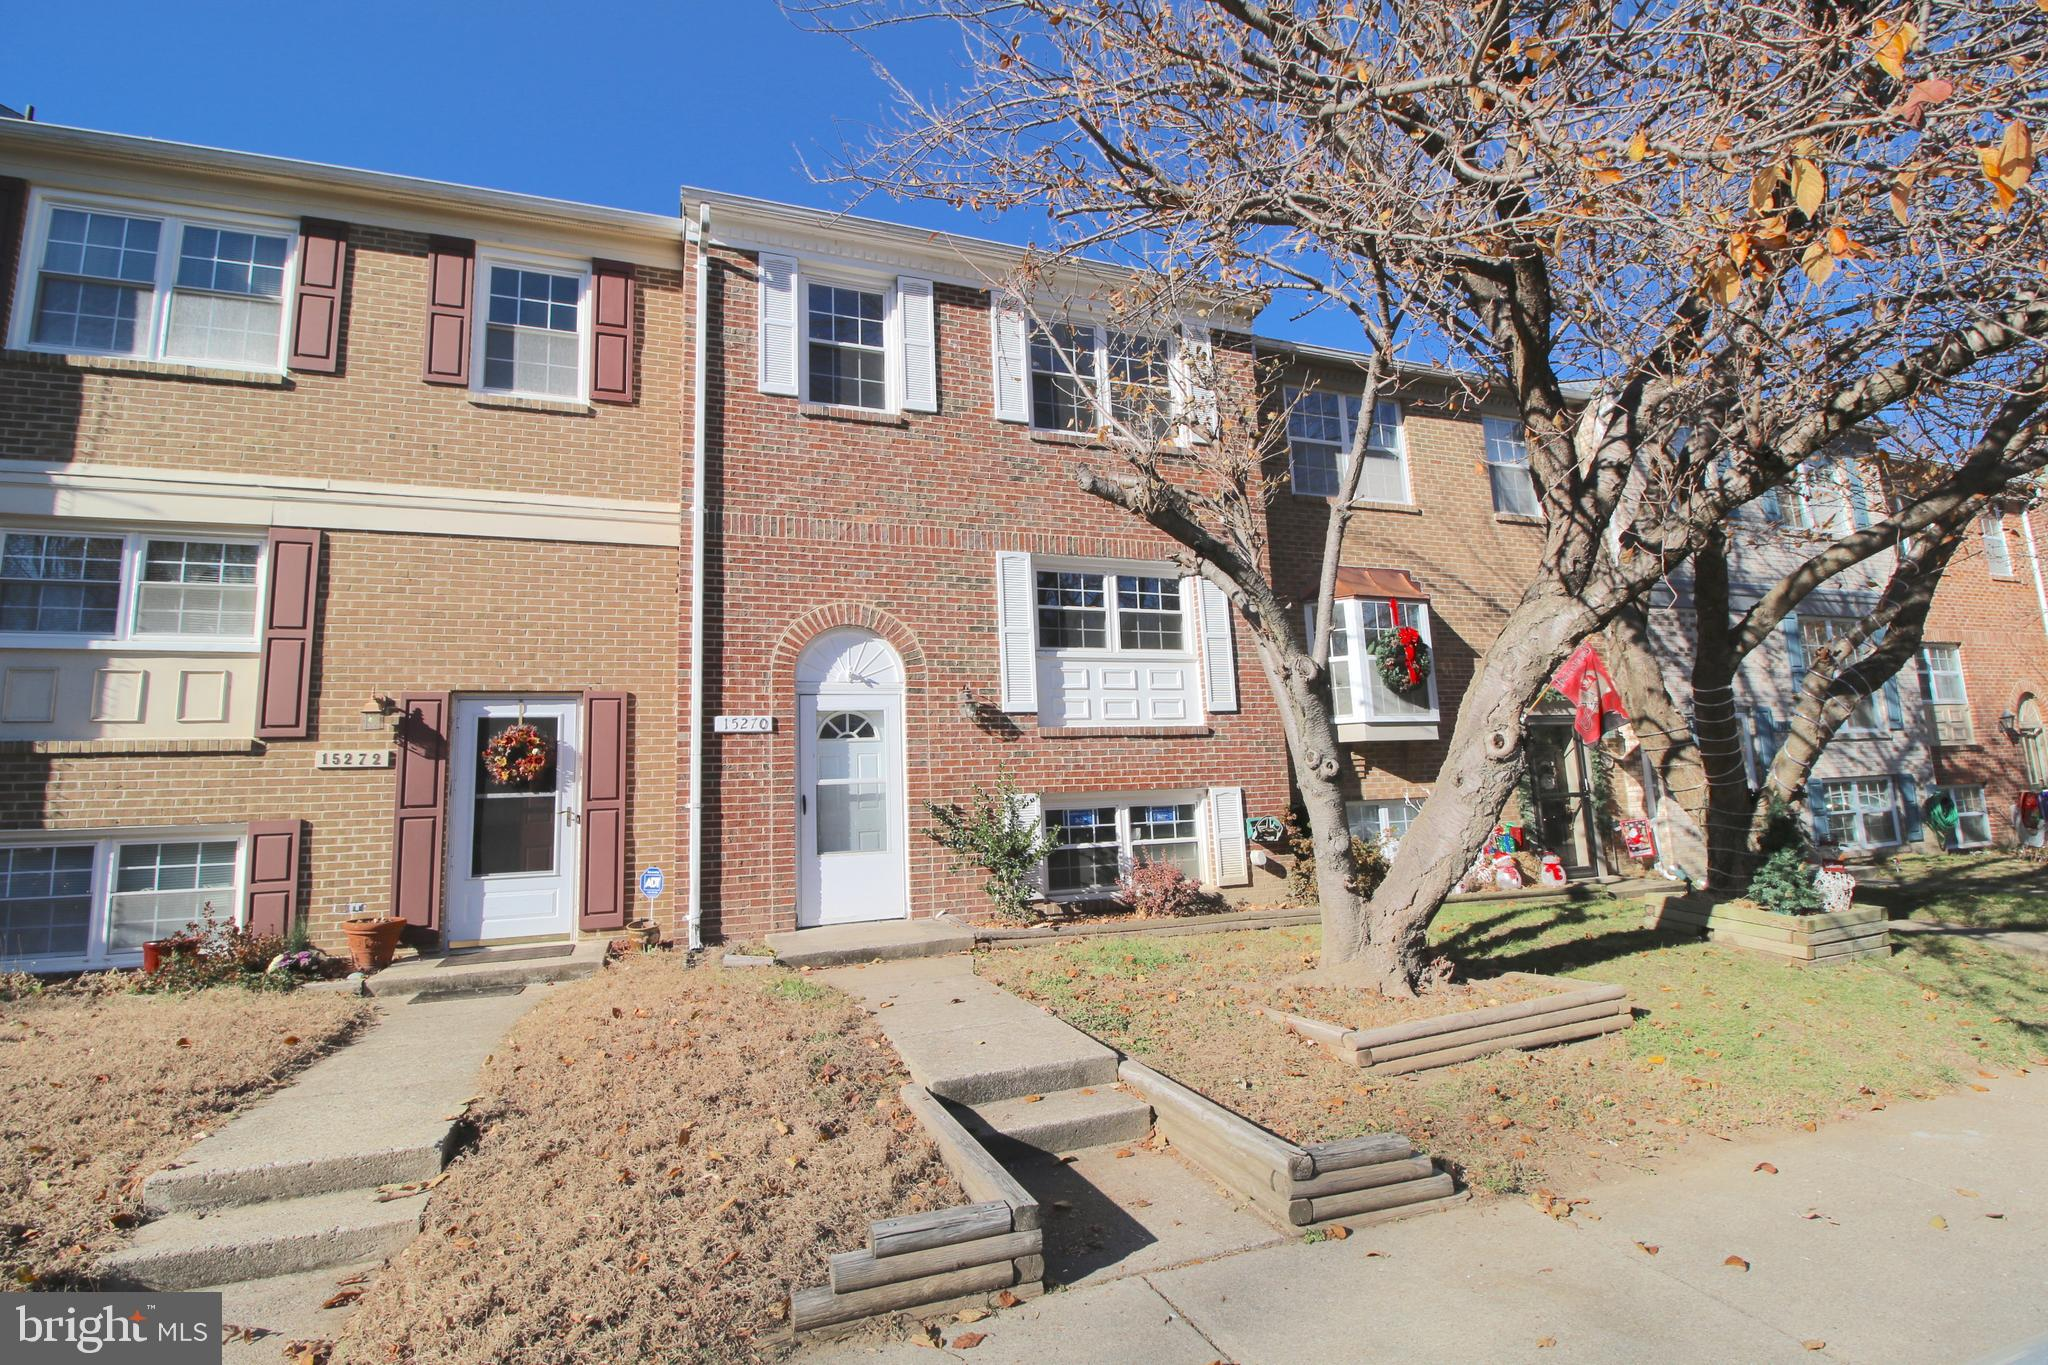 Back on the Market! Welcome Home! 3 level, 3 bedroom 3.5 bath home with fenced backyard! Large updated kitchen with granite and SS appliances and kitchen table space. Living room with lots of sun light! Upper level features 2 master bedrooms with full baths. LL features rec room 3rd bedroom and full bath! Fully fenced backyard with storage shed. Less than 1 mile from Rt 95, VRE, Commuter Lots, shopping, and dining.